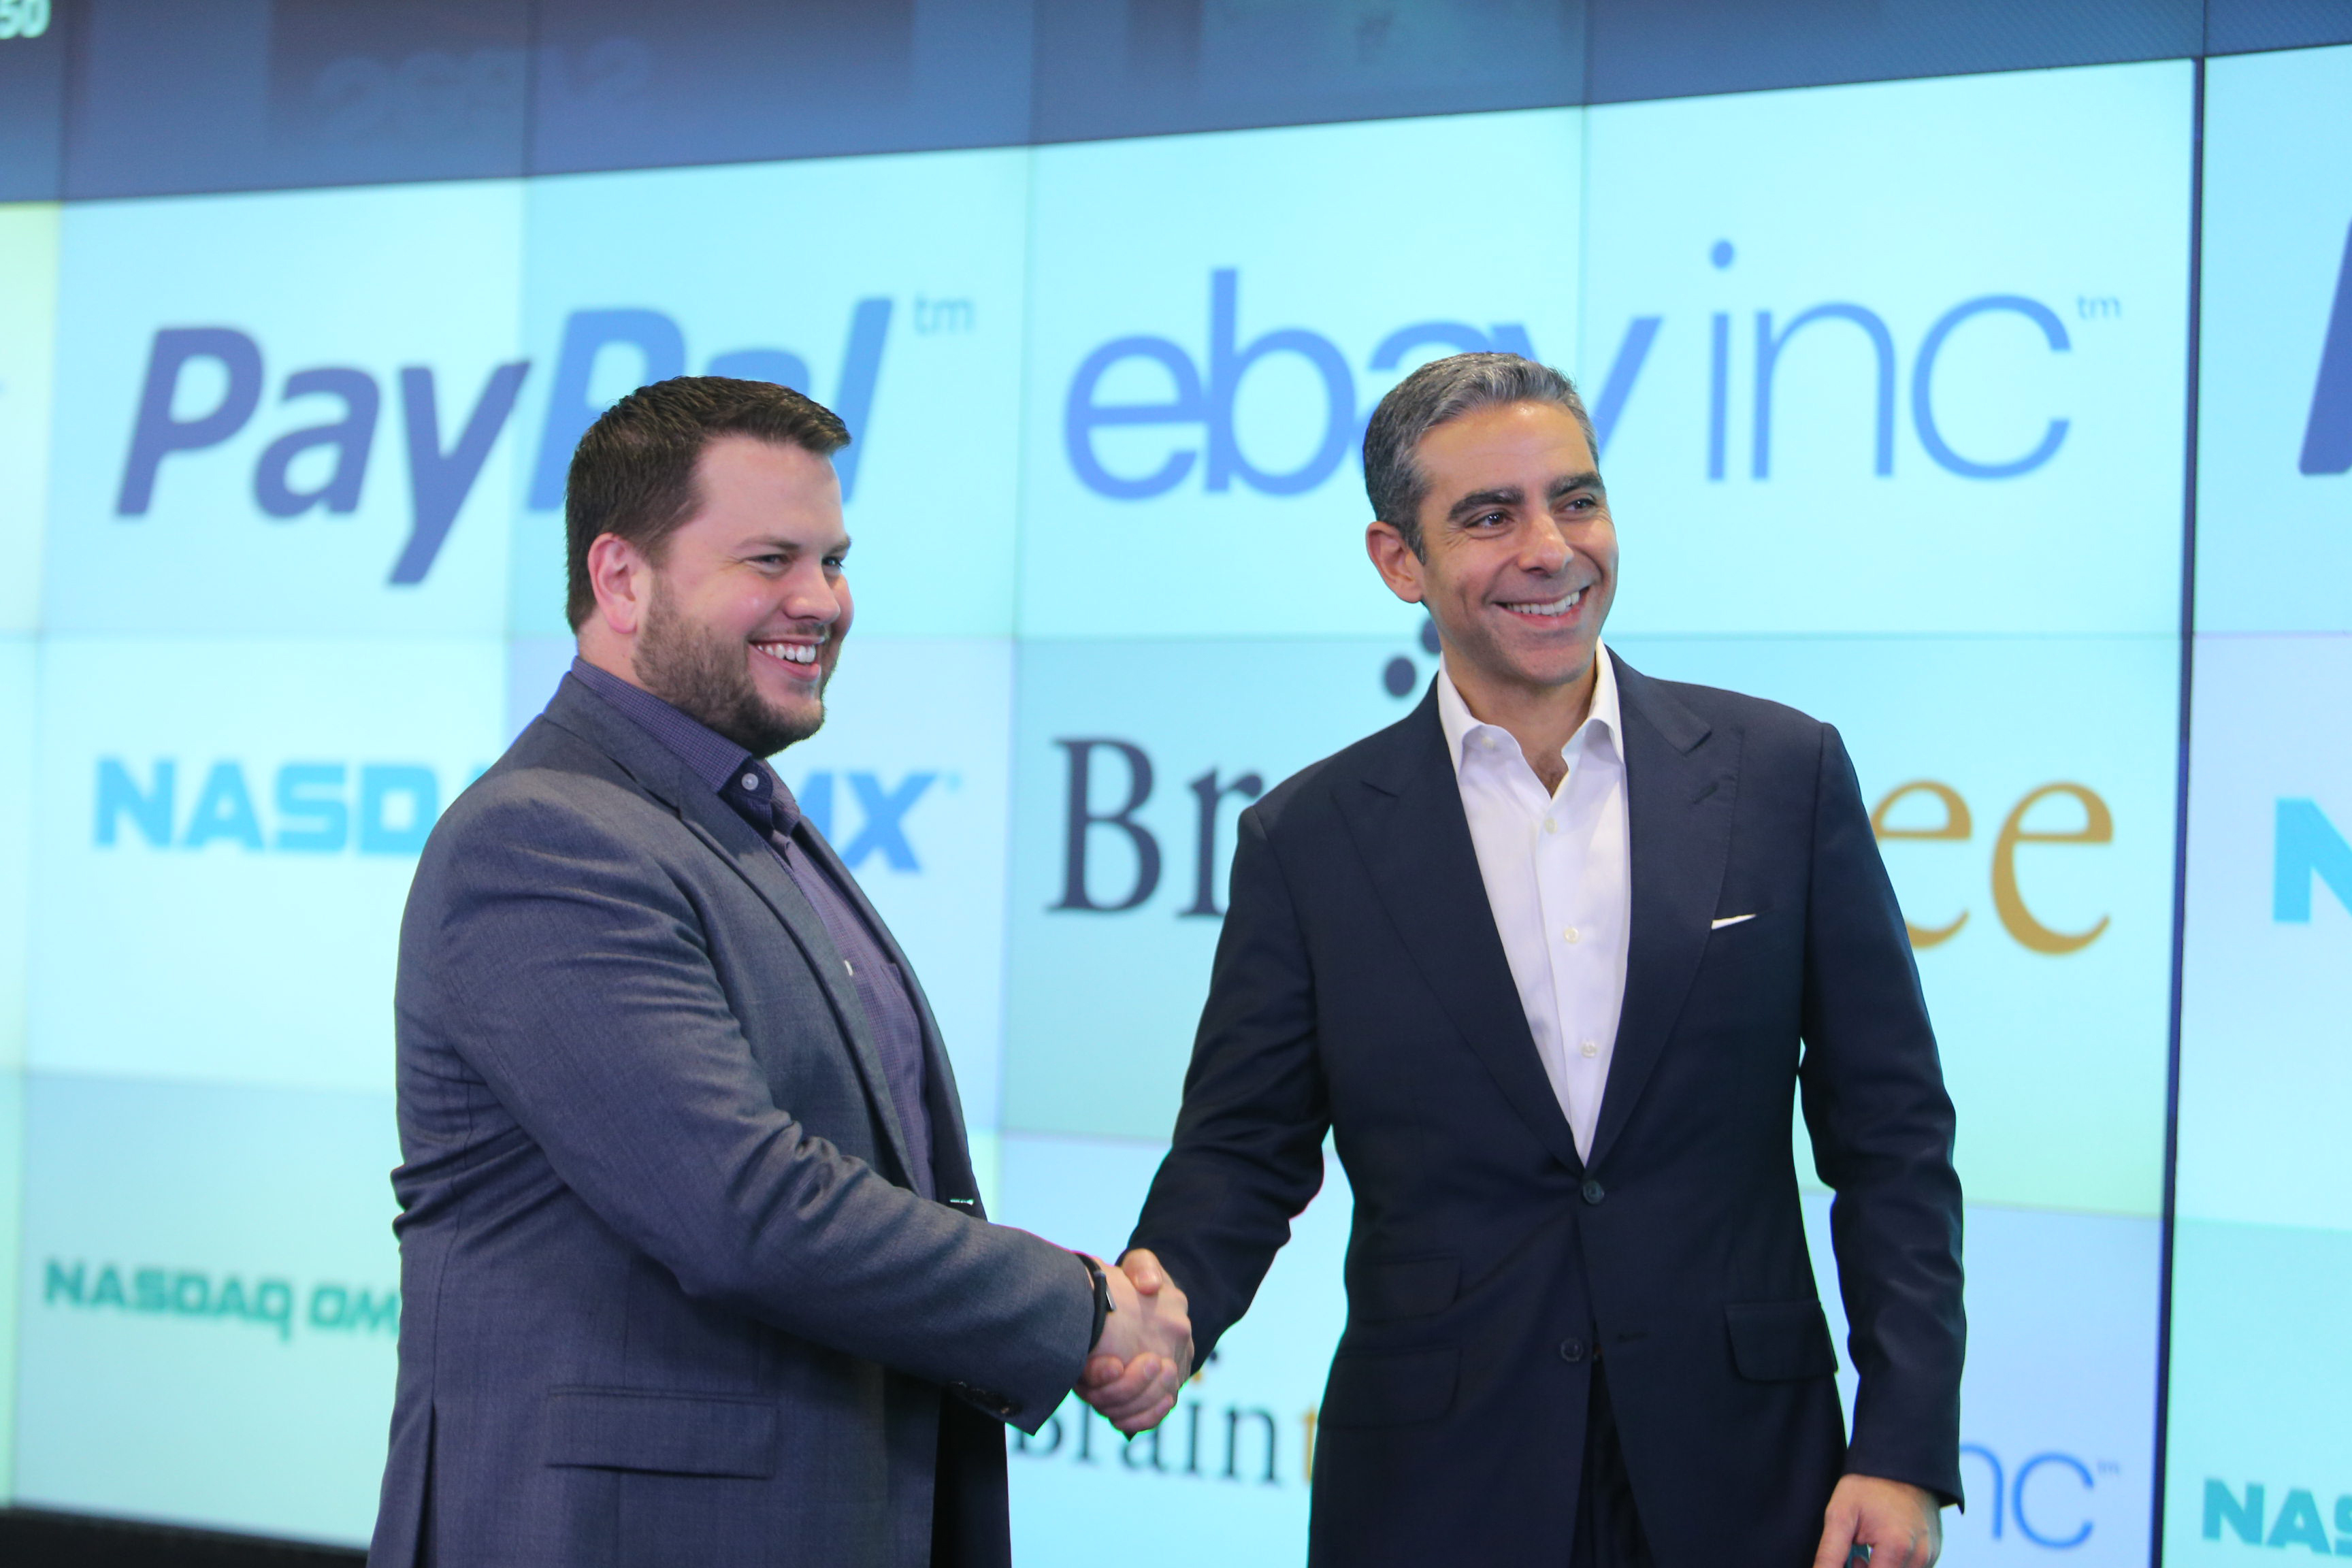 Bill Ready, CEO of Braintree and David Marcus, President of PayPal at the NASDAQ MarketSite in New York City. EBay Inc. announced that its PayPal unit plans to acquire Braintree, an innovative global payment platform. (Photo: Business Wire)